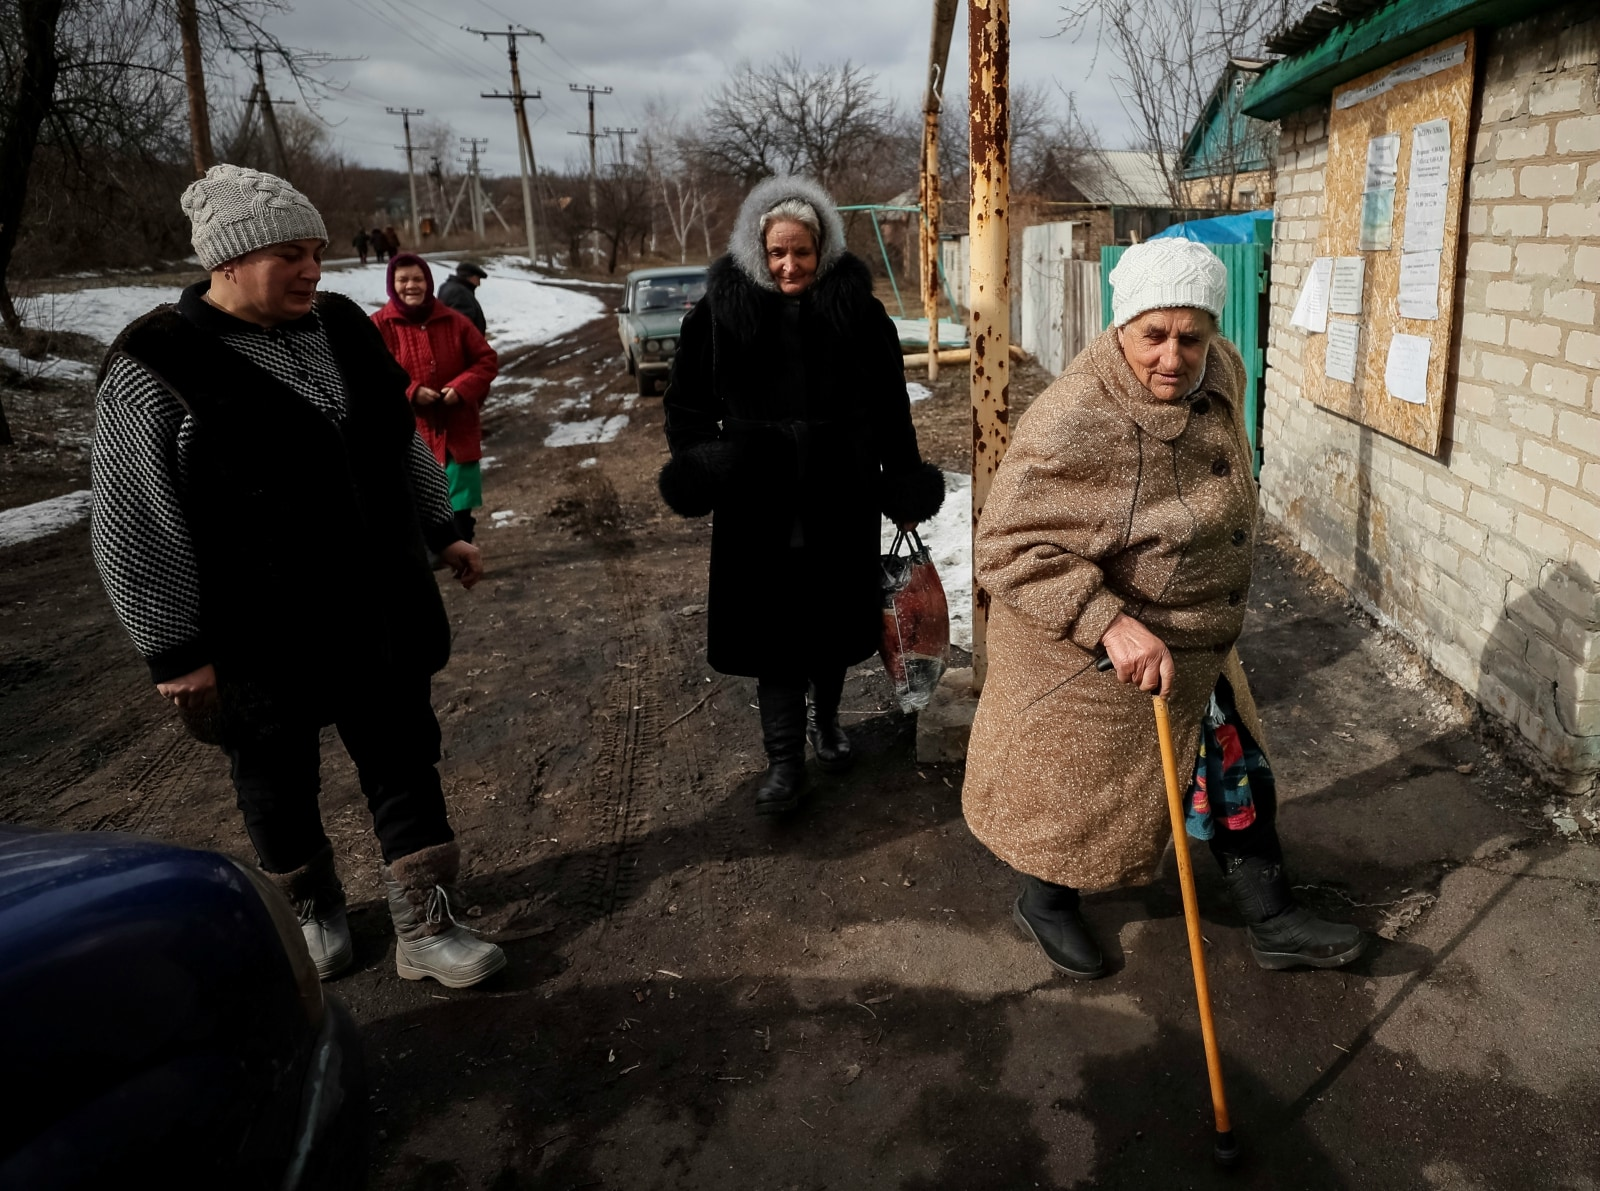 Local resident Galina Soboleva (C) walks along a road with other women in the village of Zaitseve, Ukraine, February 22, 2019. There are not many people left in Zaitseve, a village on the front line that divides Ukraine, but voters like Soboleva want just one thing from this month's presidential election.